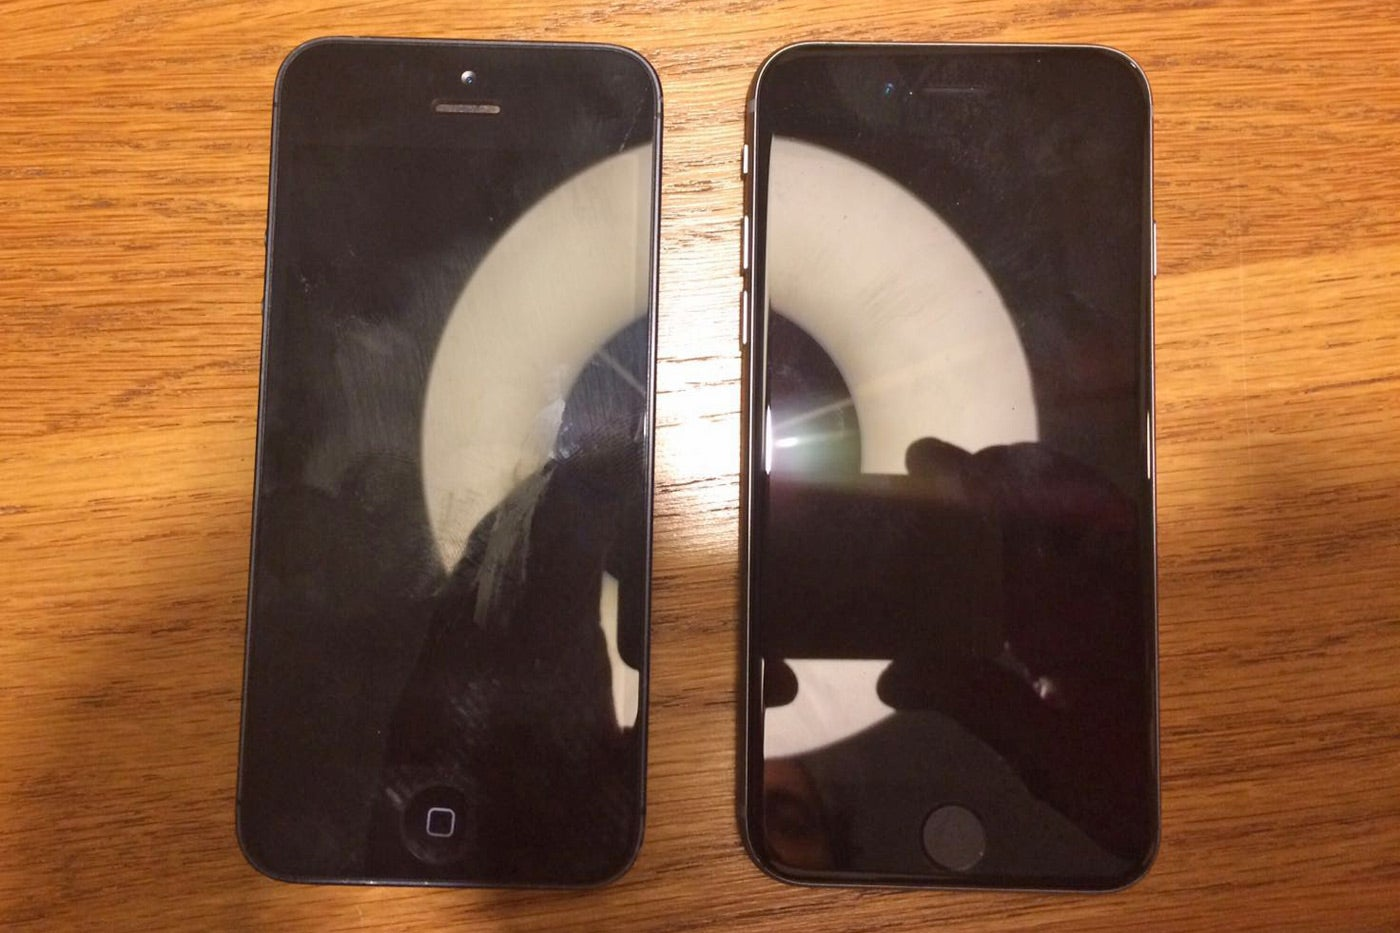 iPhone 5se Release Rumored To Come In March 2016